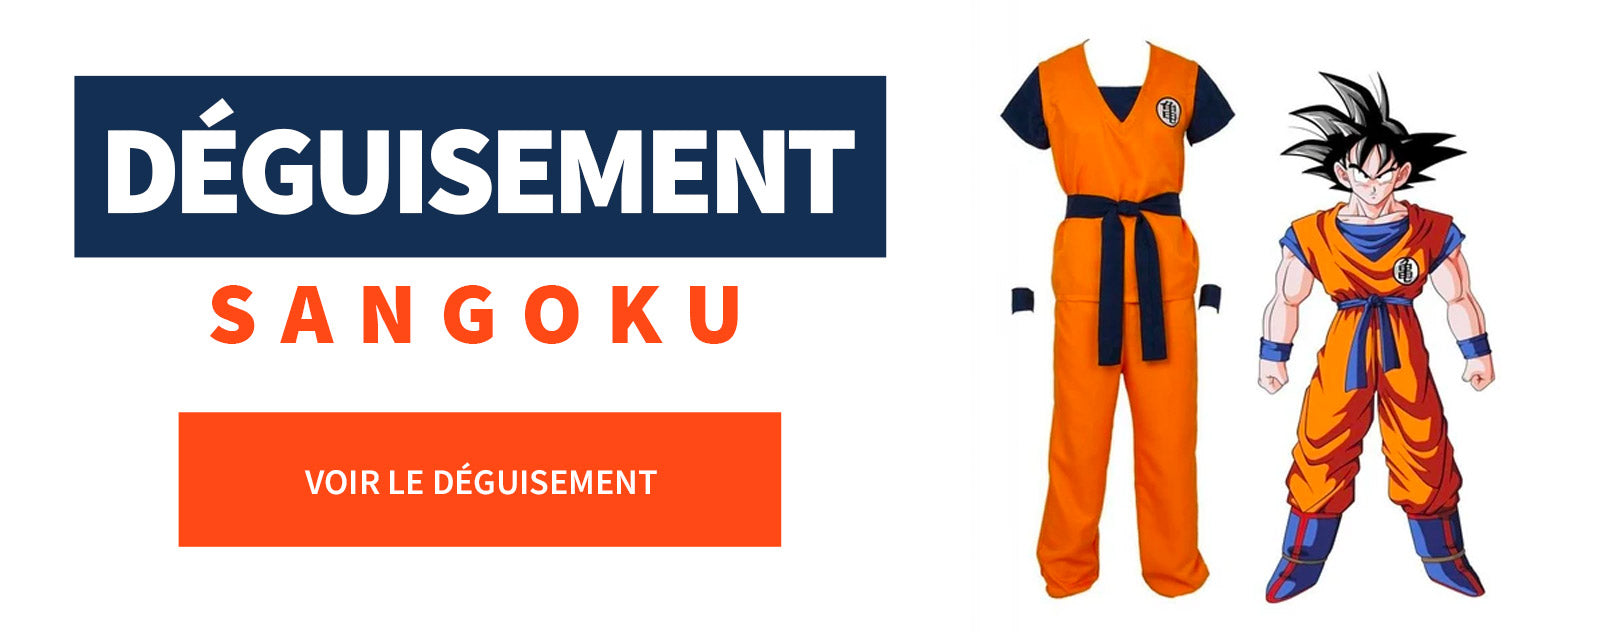 Déguisement Dragon Ball Z Sangoku